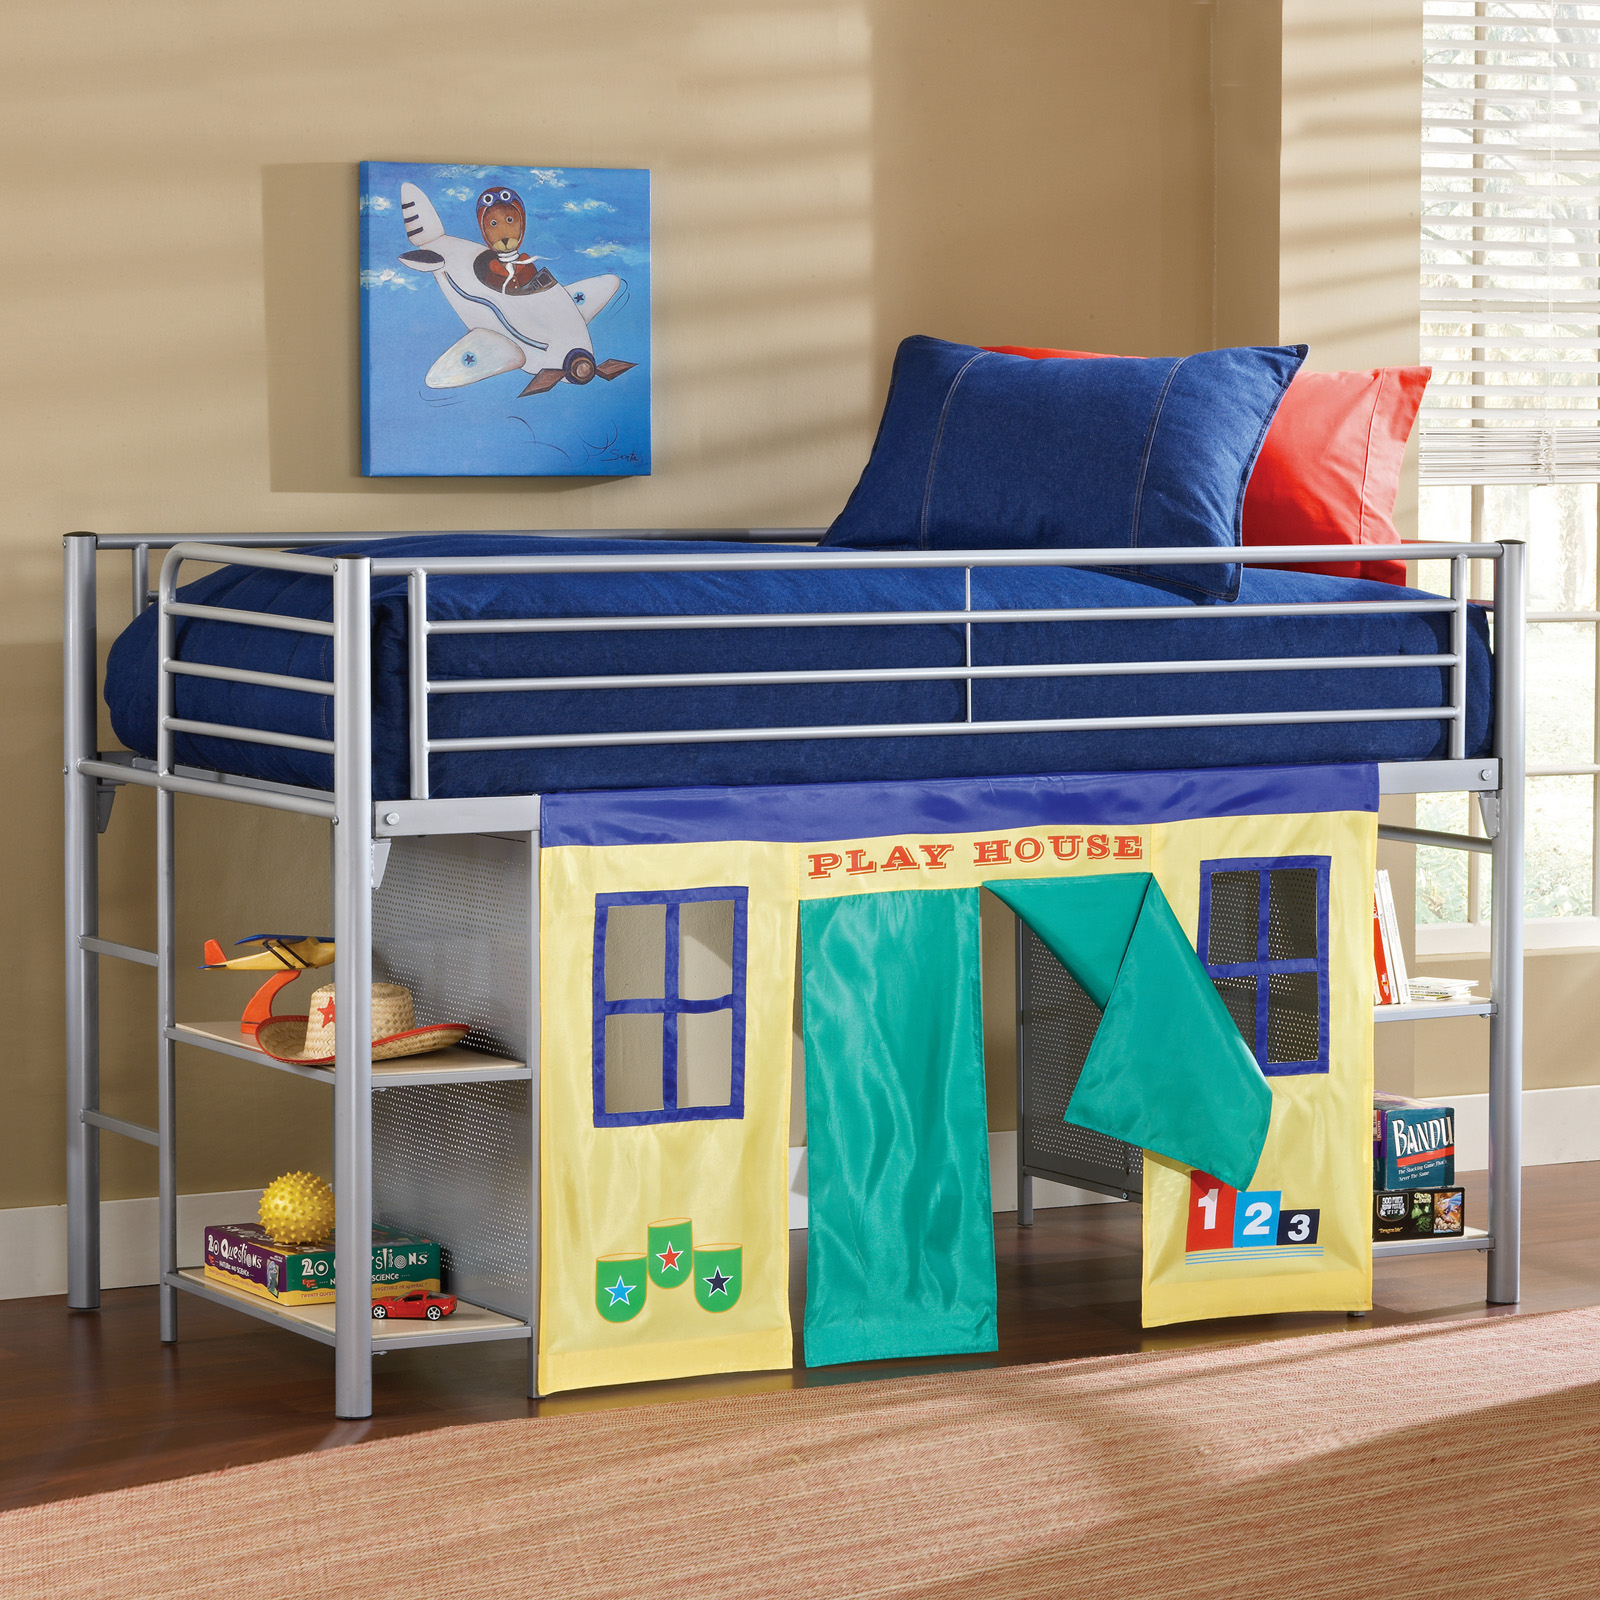 Bunk beds with slide and tent - Bunk Beds With Slide And Tent 34